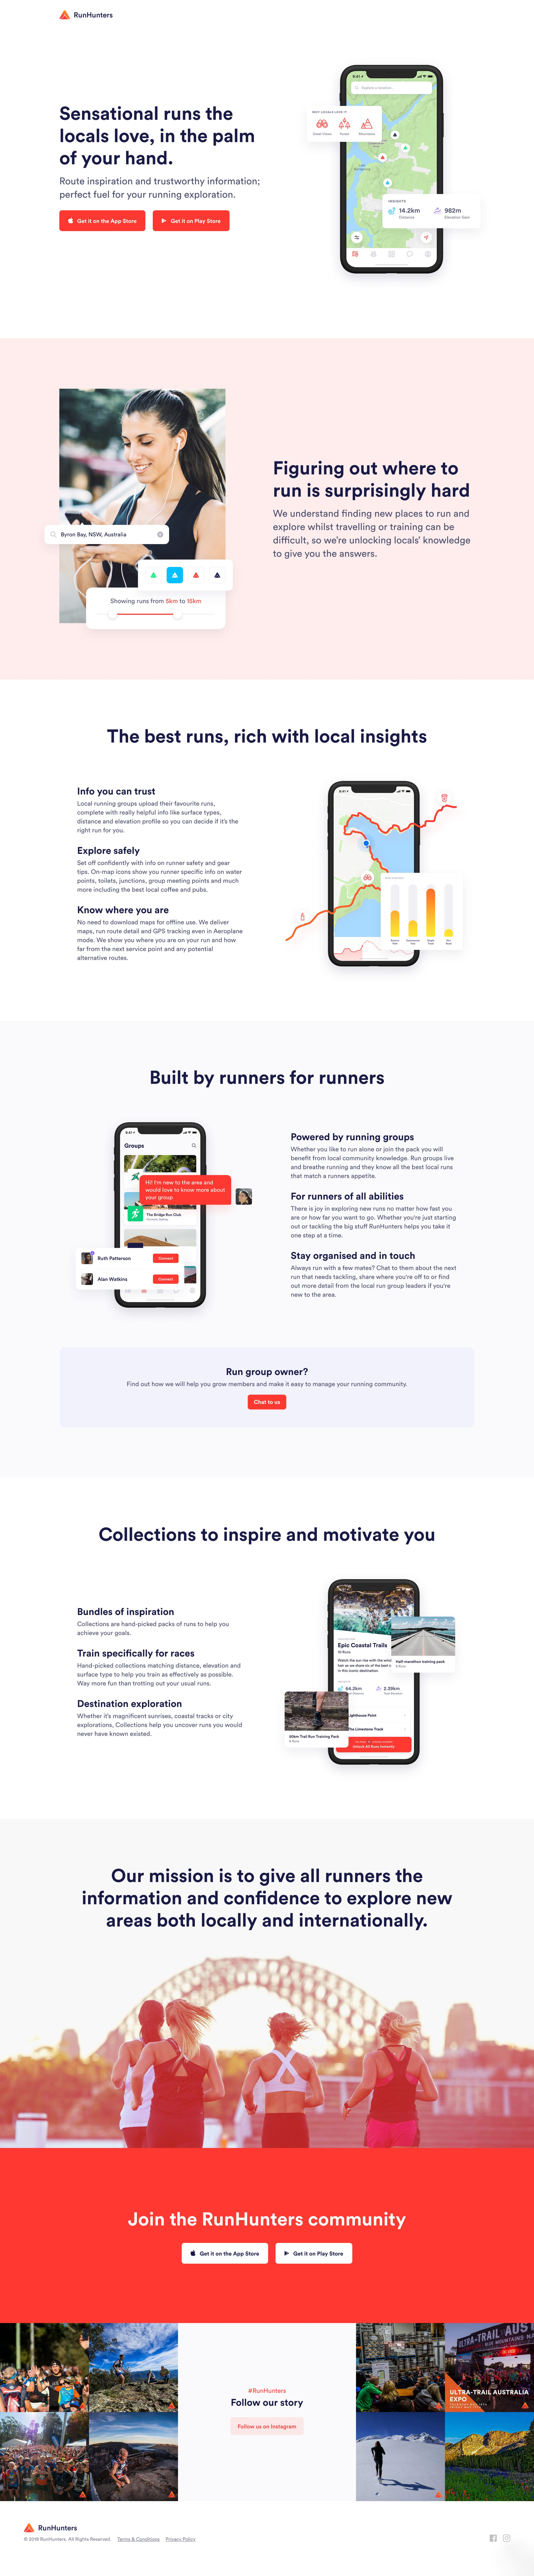 RunHunters Website Screenshot